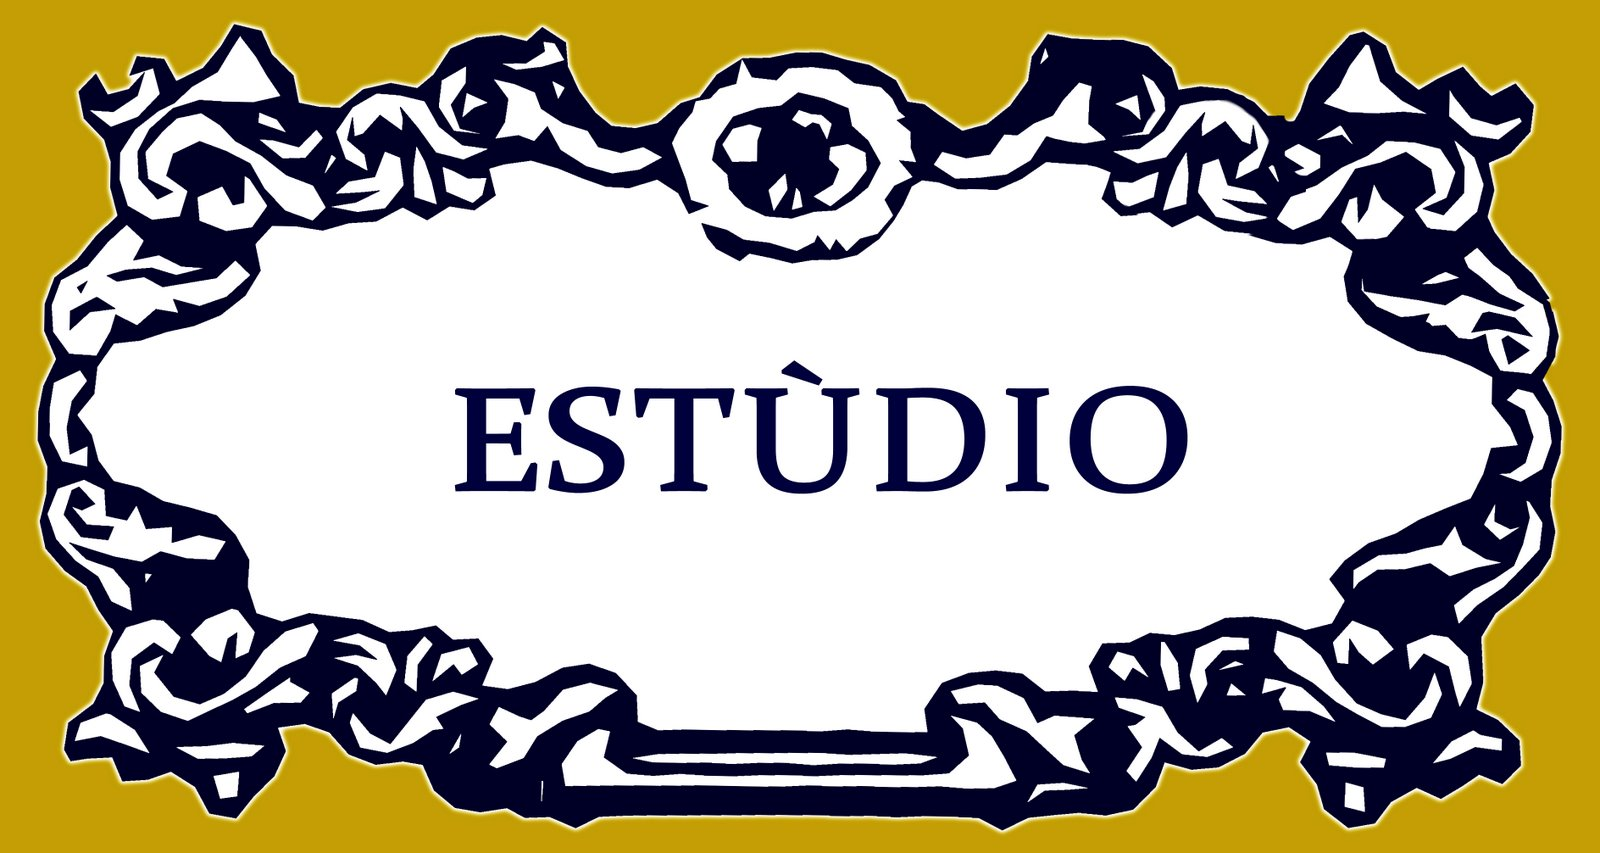 Estudio